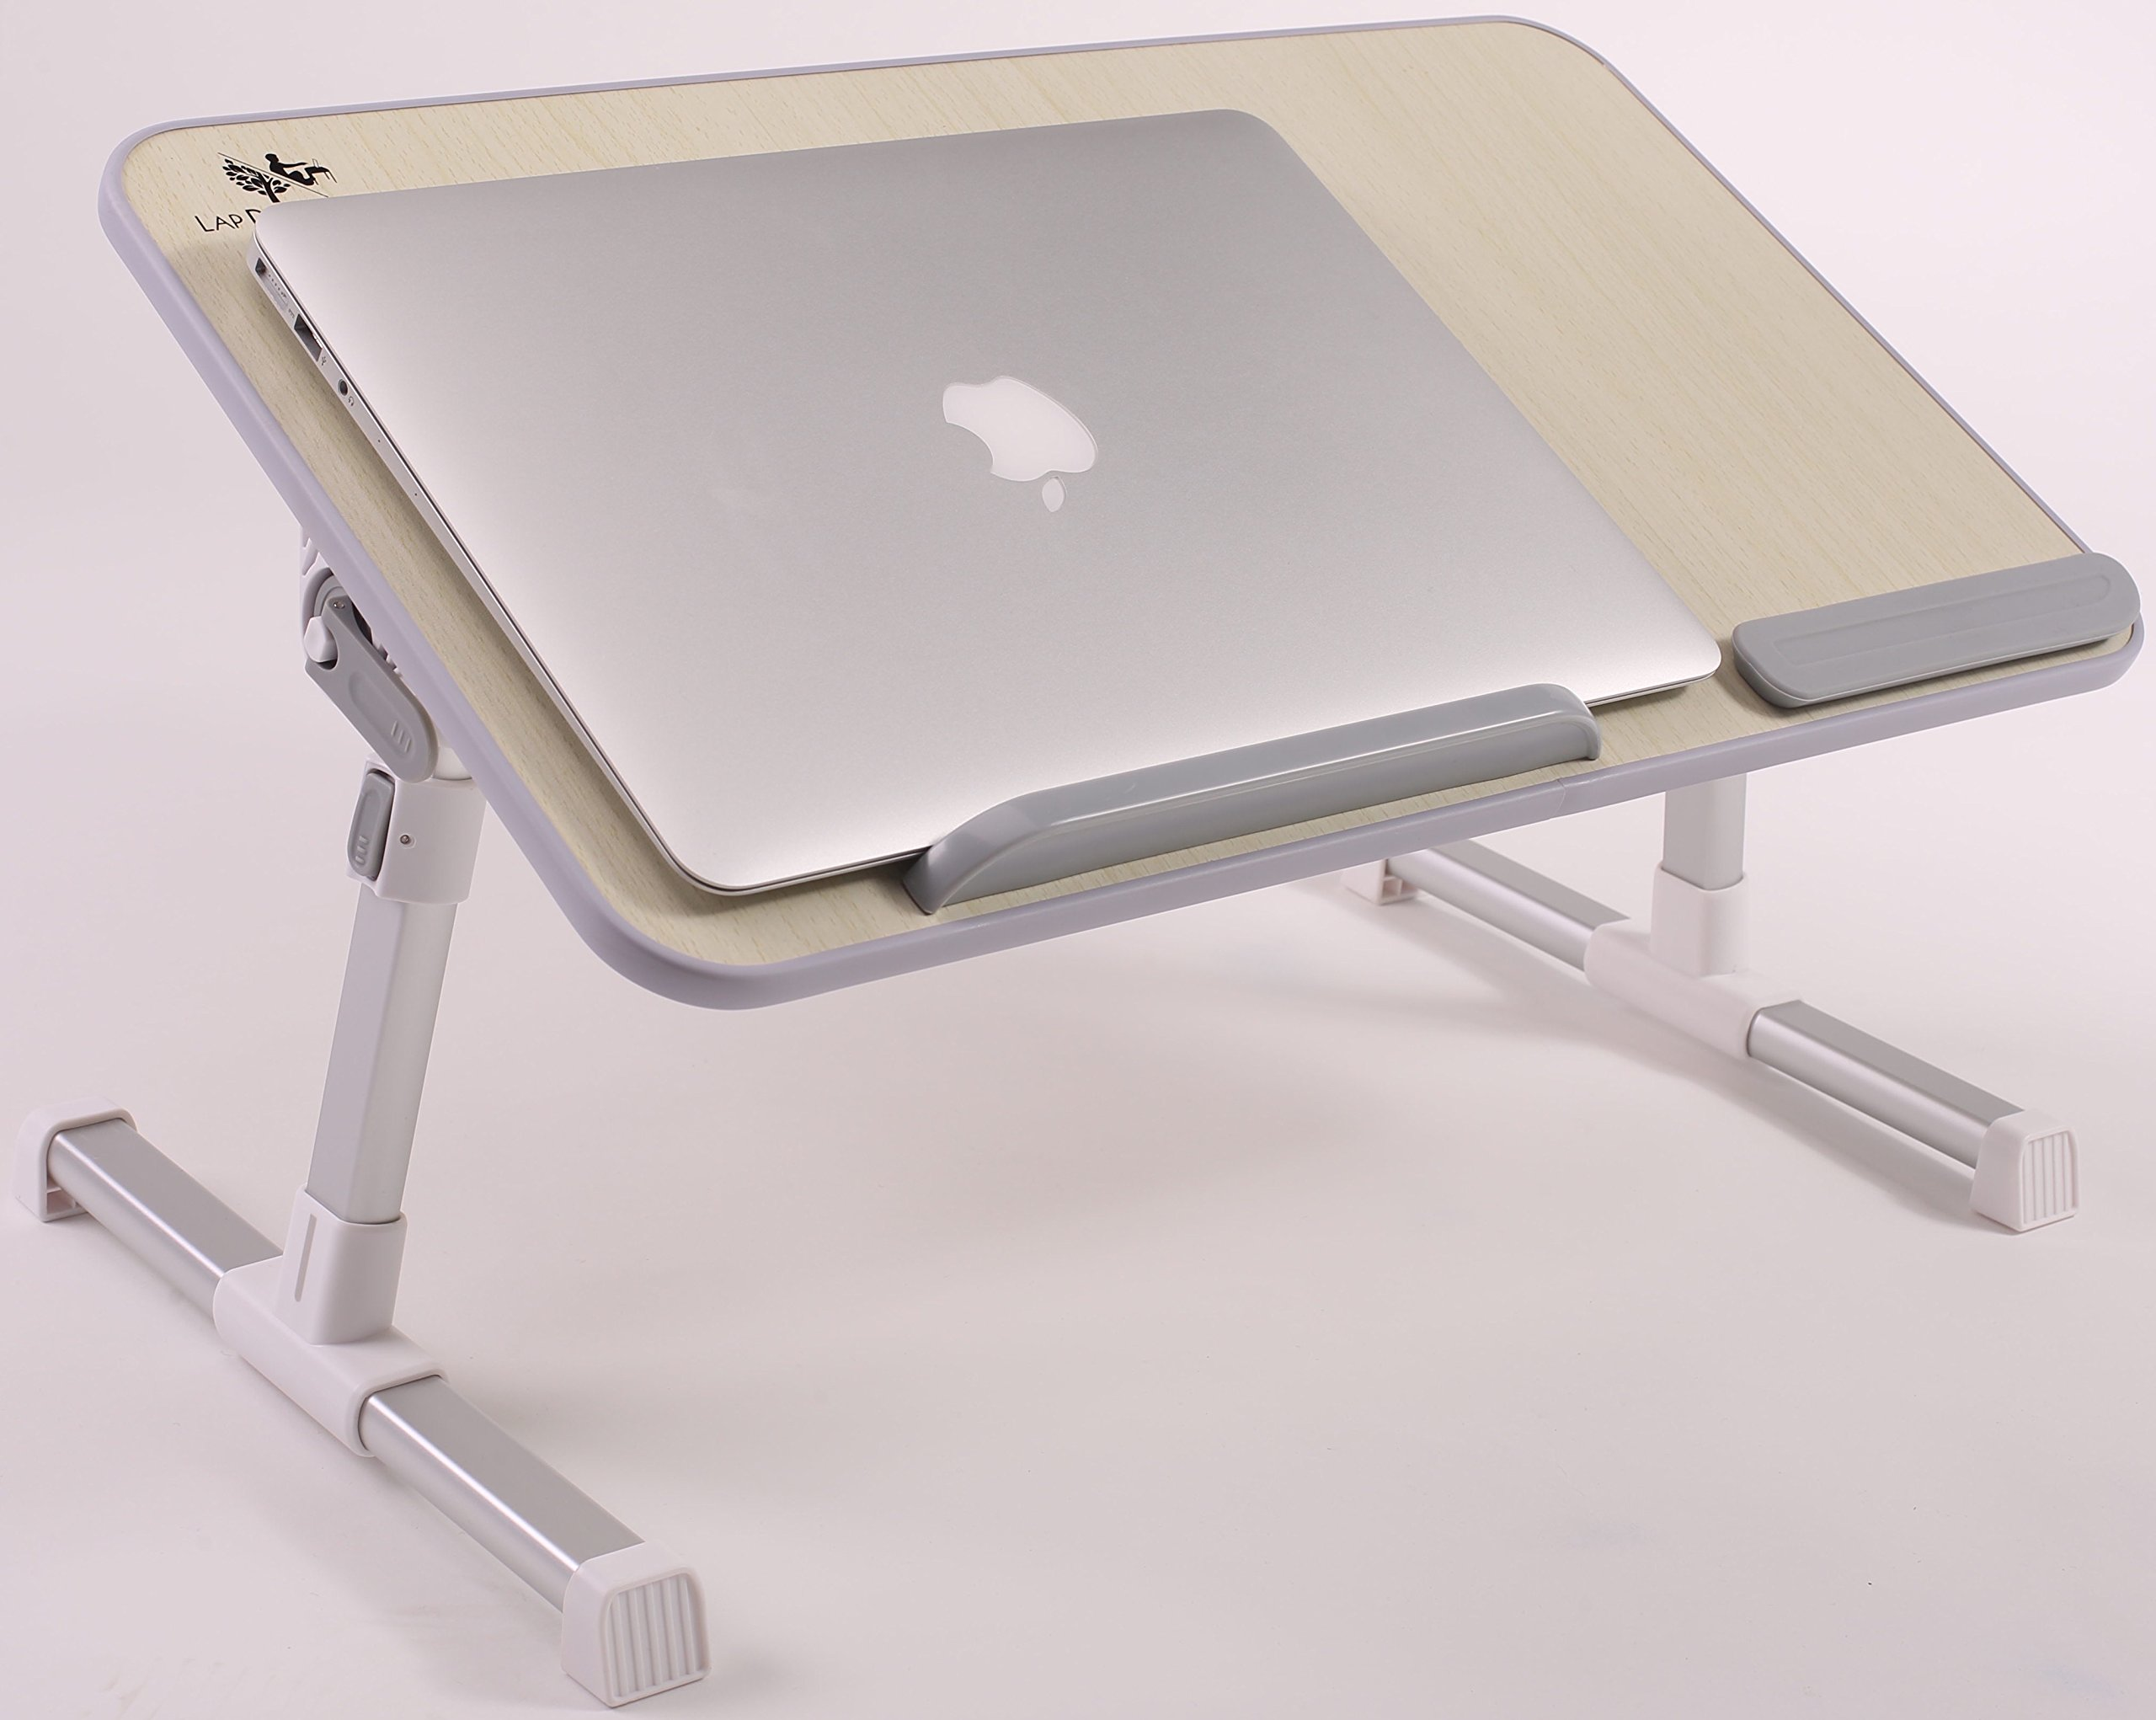 Enjoyable Buy Adjustable Laptop Table By Lap Desk Master Home Interior And Landscaping Ologienasavecom